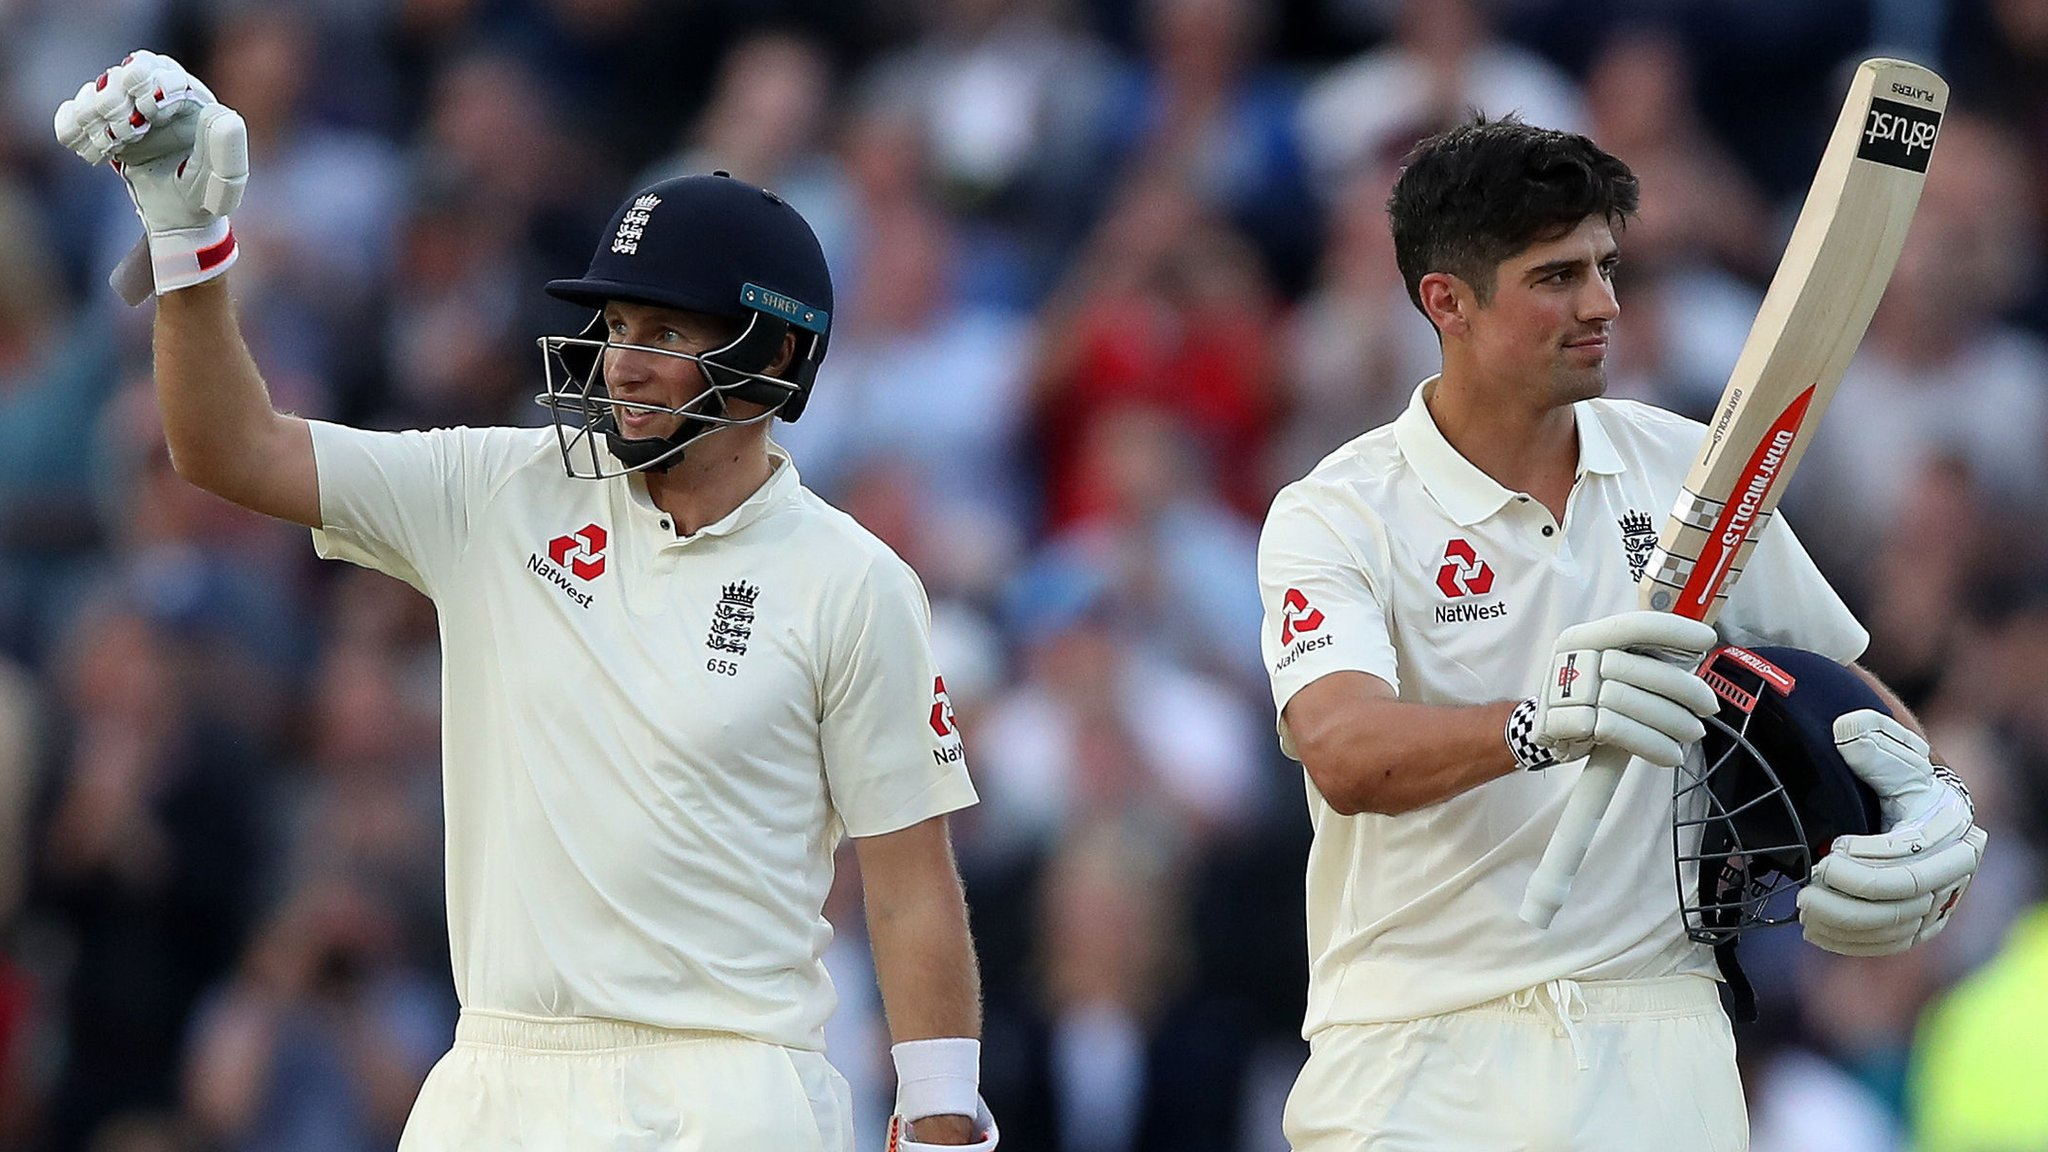 Cook & Root hit centuries as England dominate - report & highlights